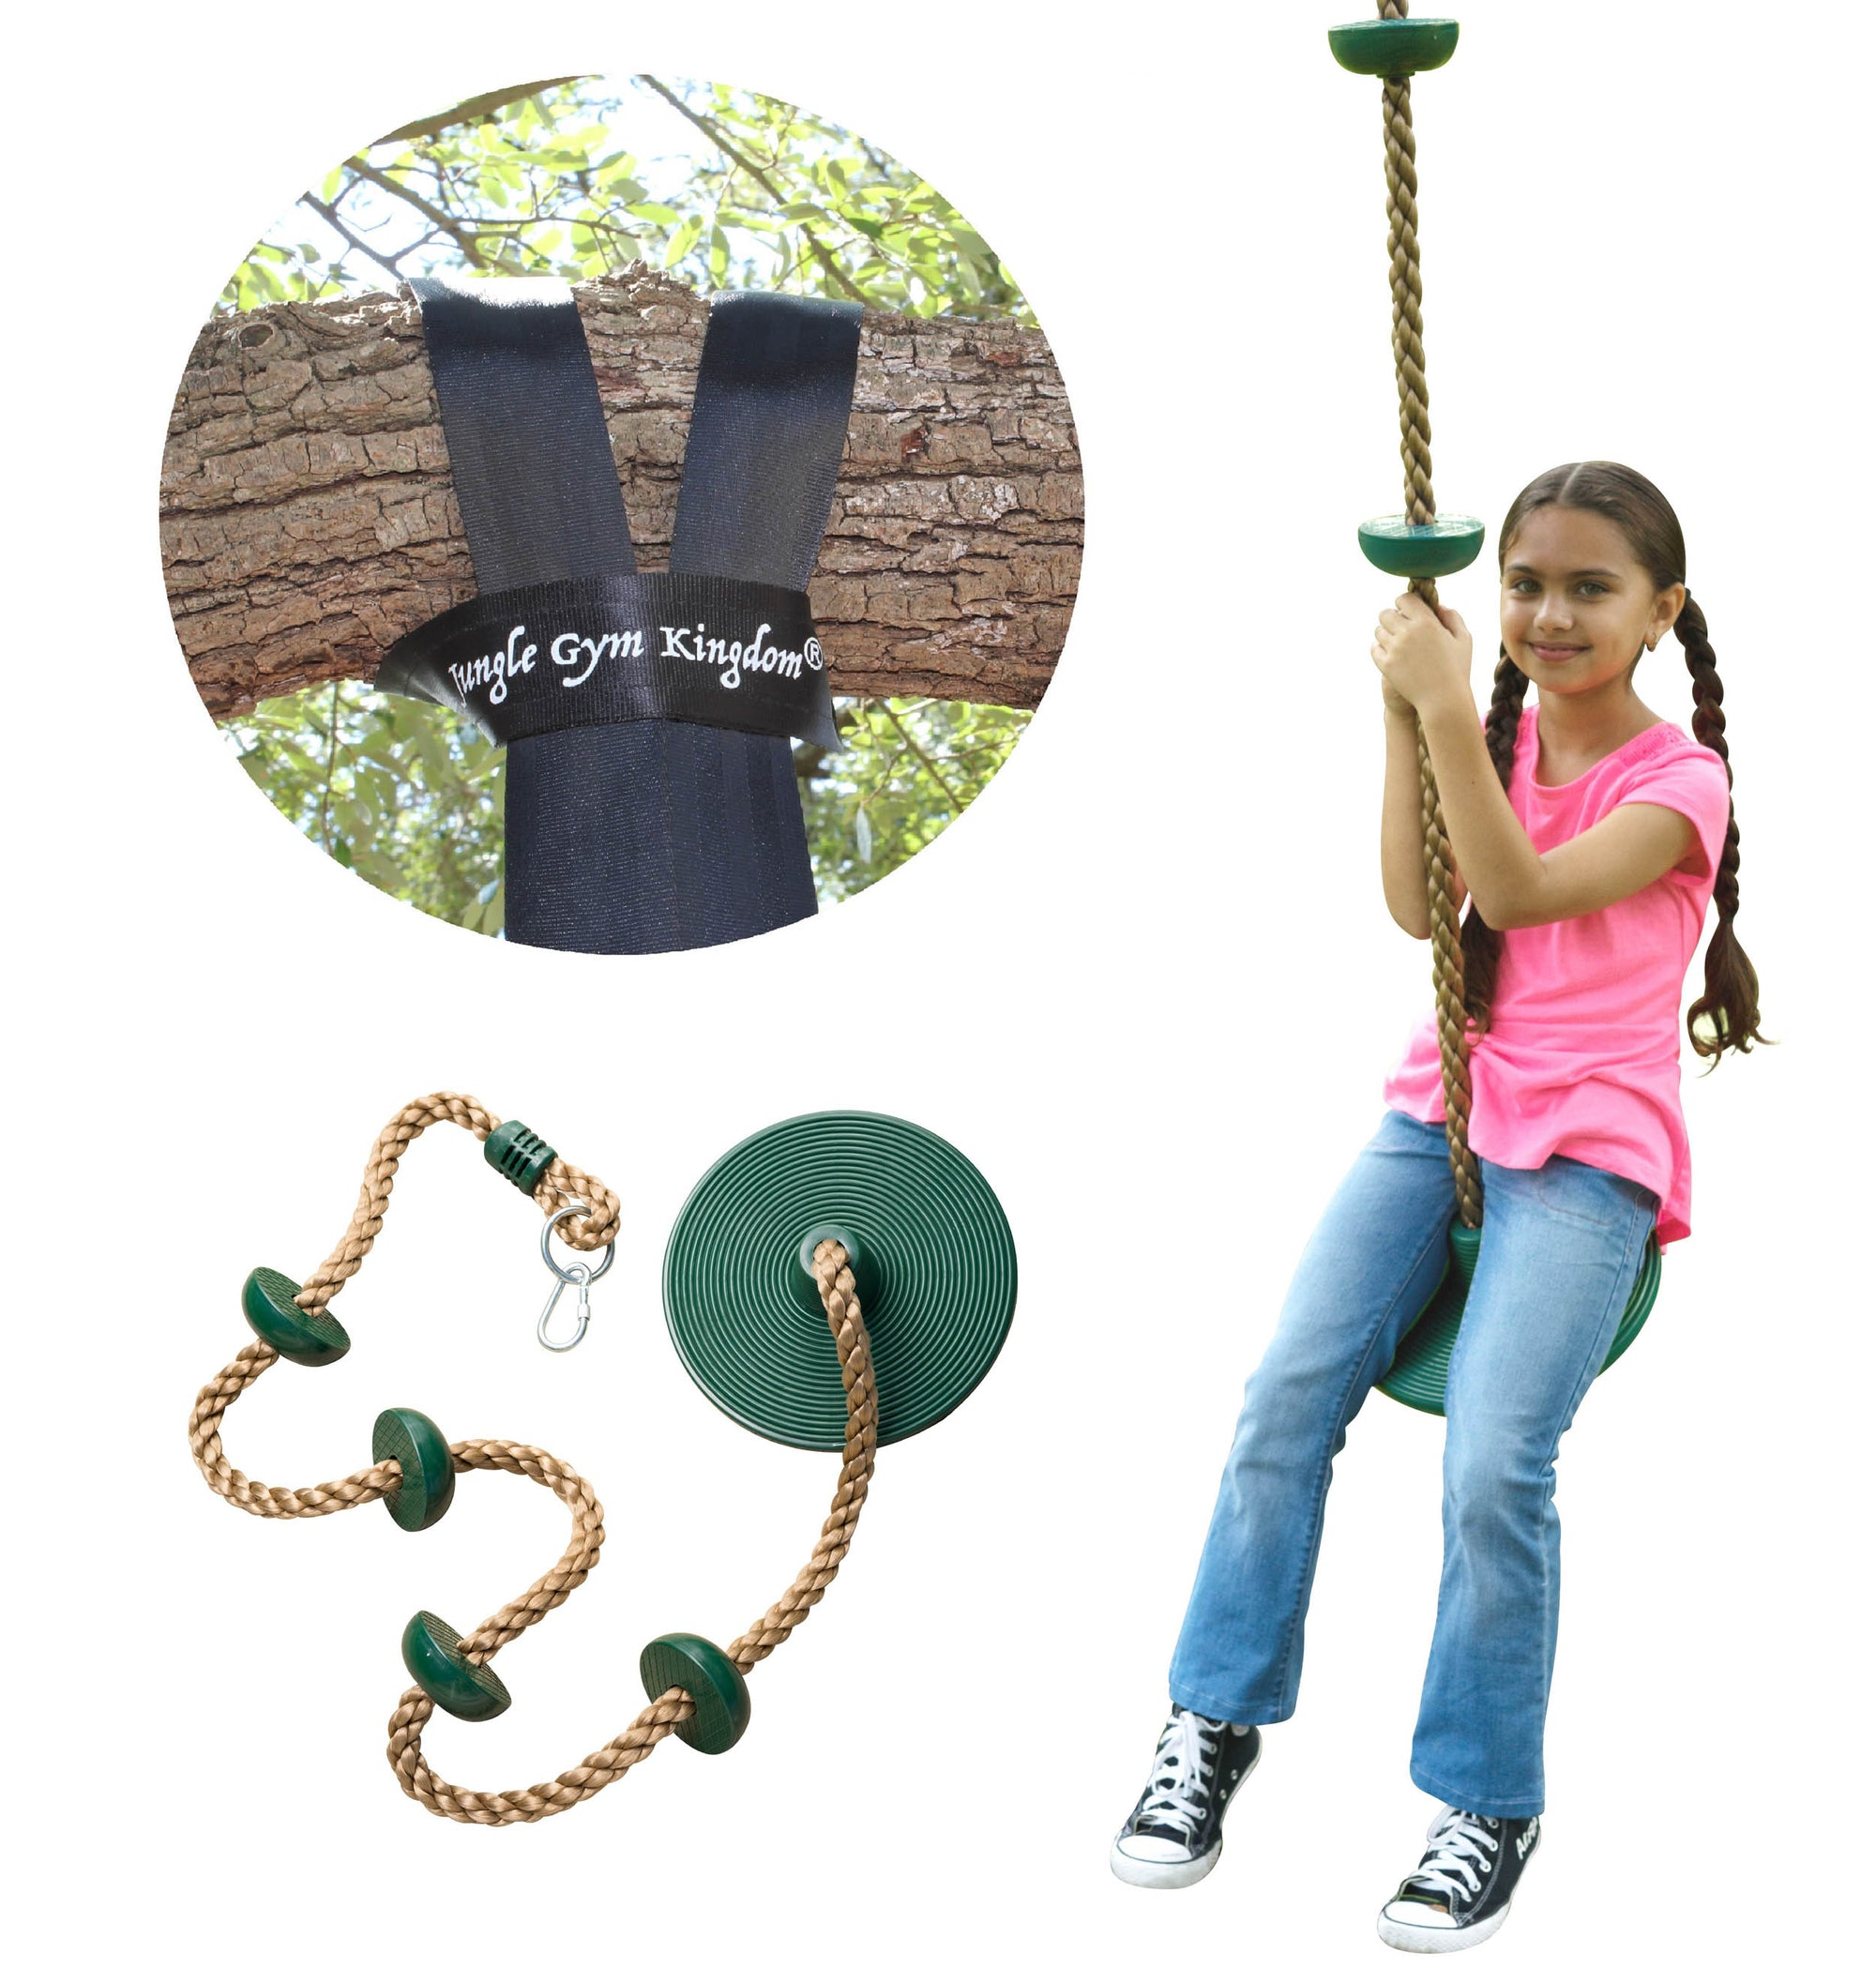 Tree Swing Climbing Rope with Platforms Green Disc Swings Seat - Outdoor Playground Set Accessories - Bonus Snap Hook and 4 Feet Strap